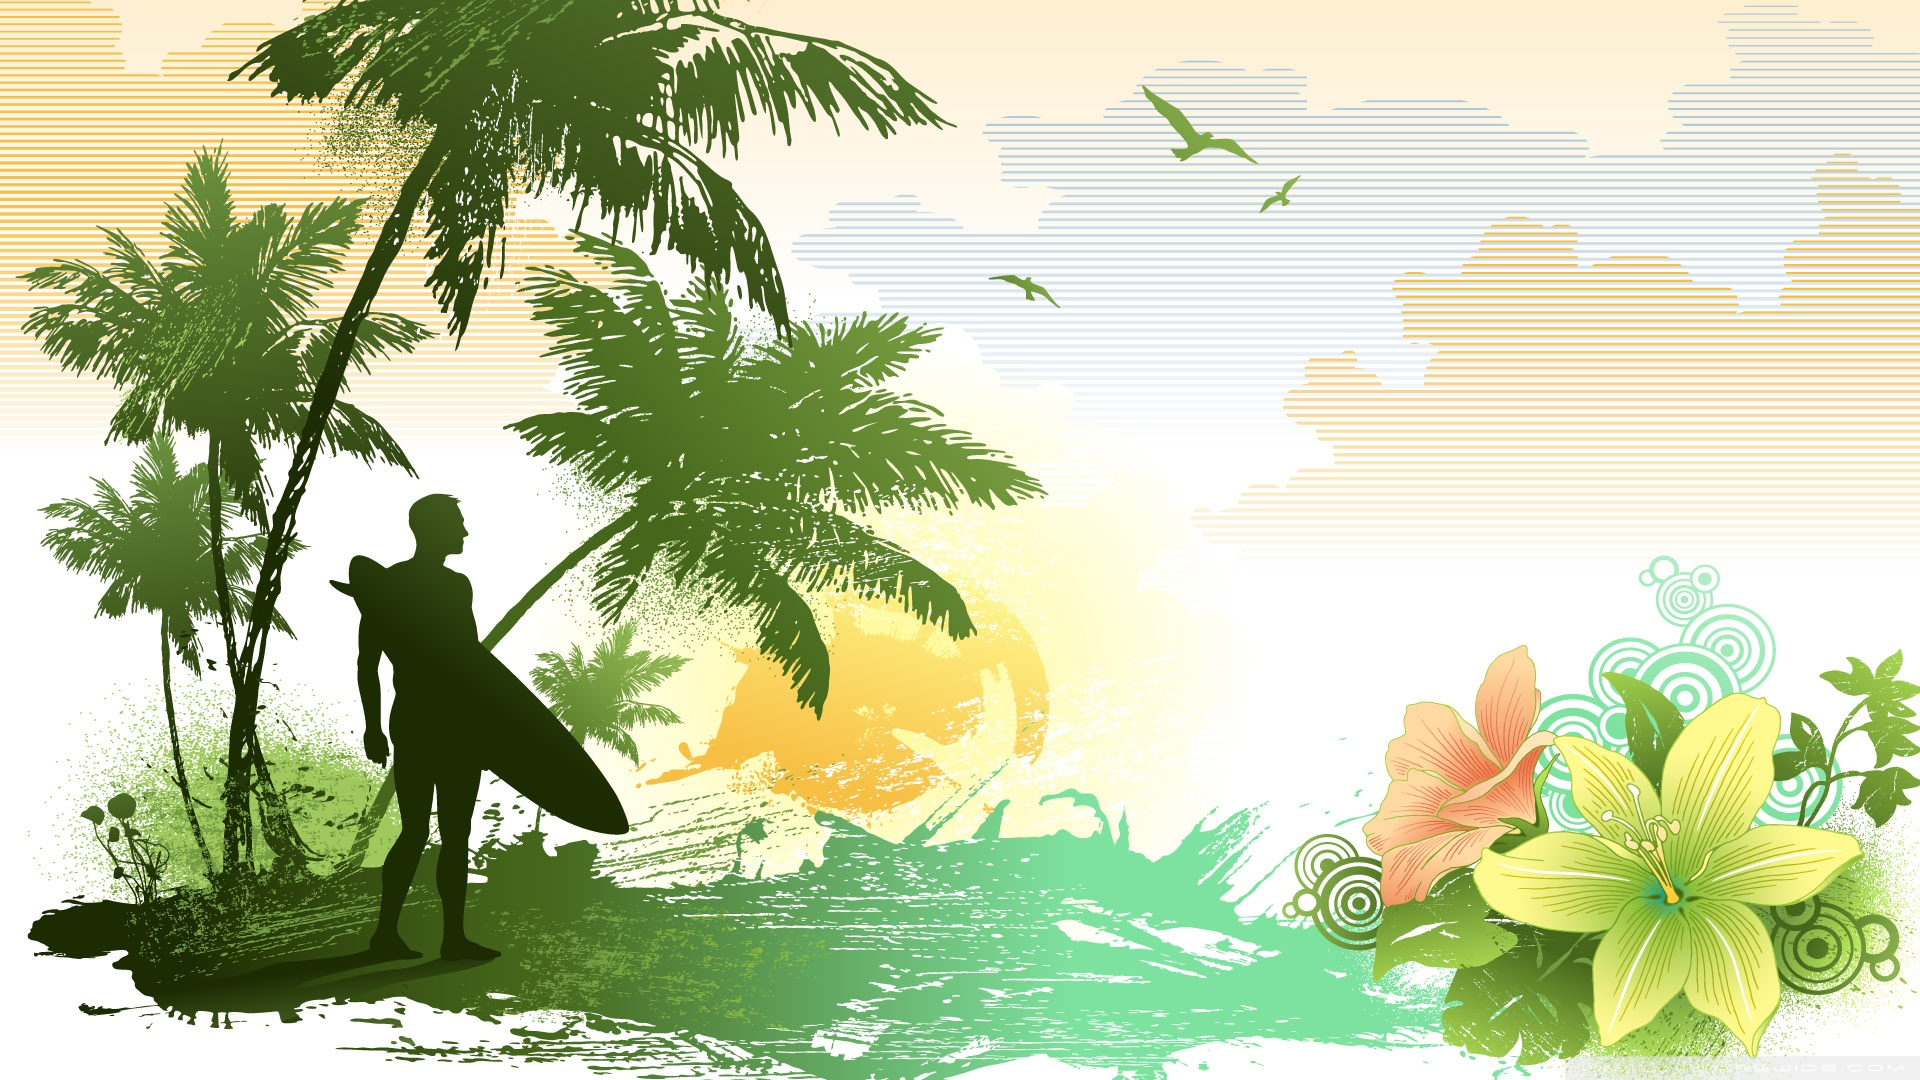 Surfing HD Wallpaper   Wallpaper High Definition High Quality 1920x1080